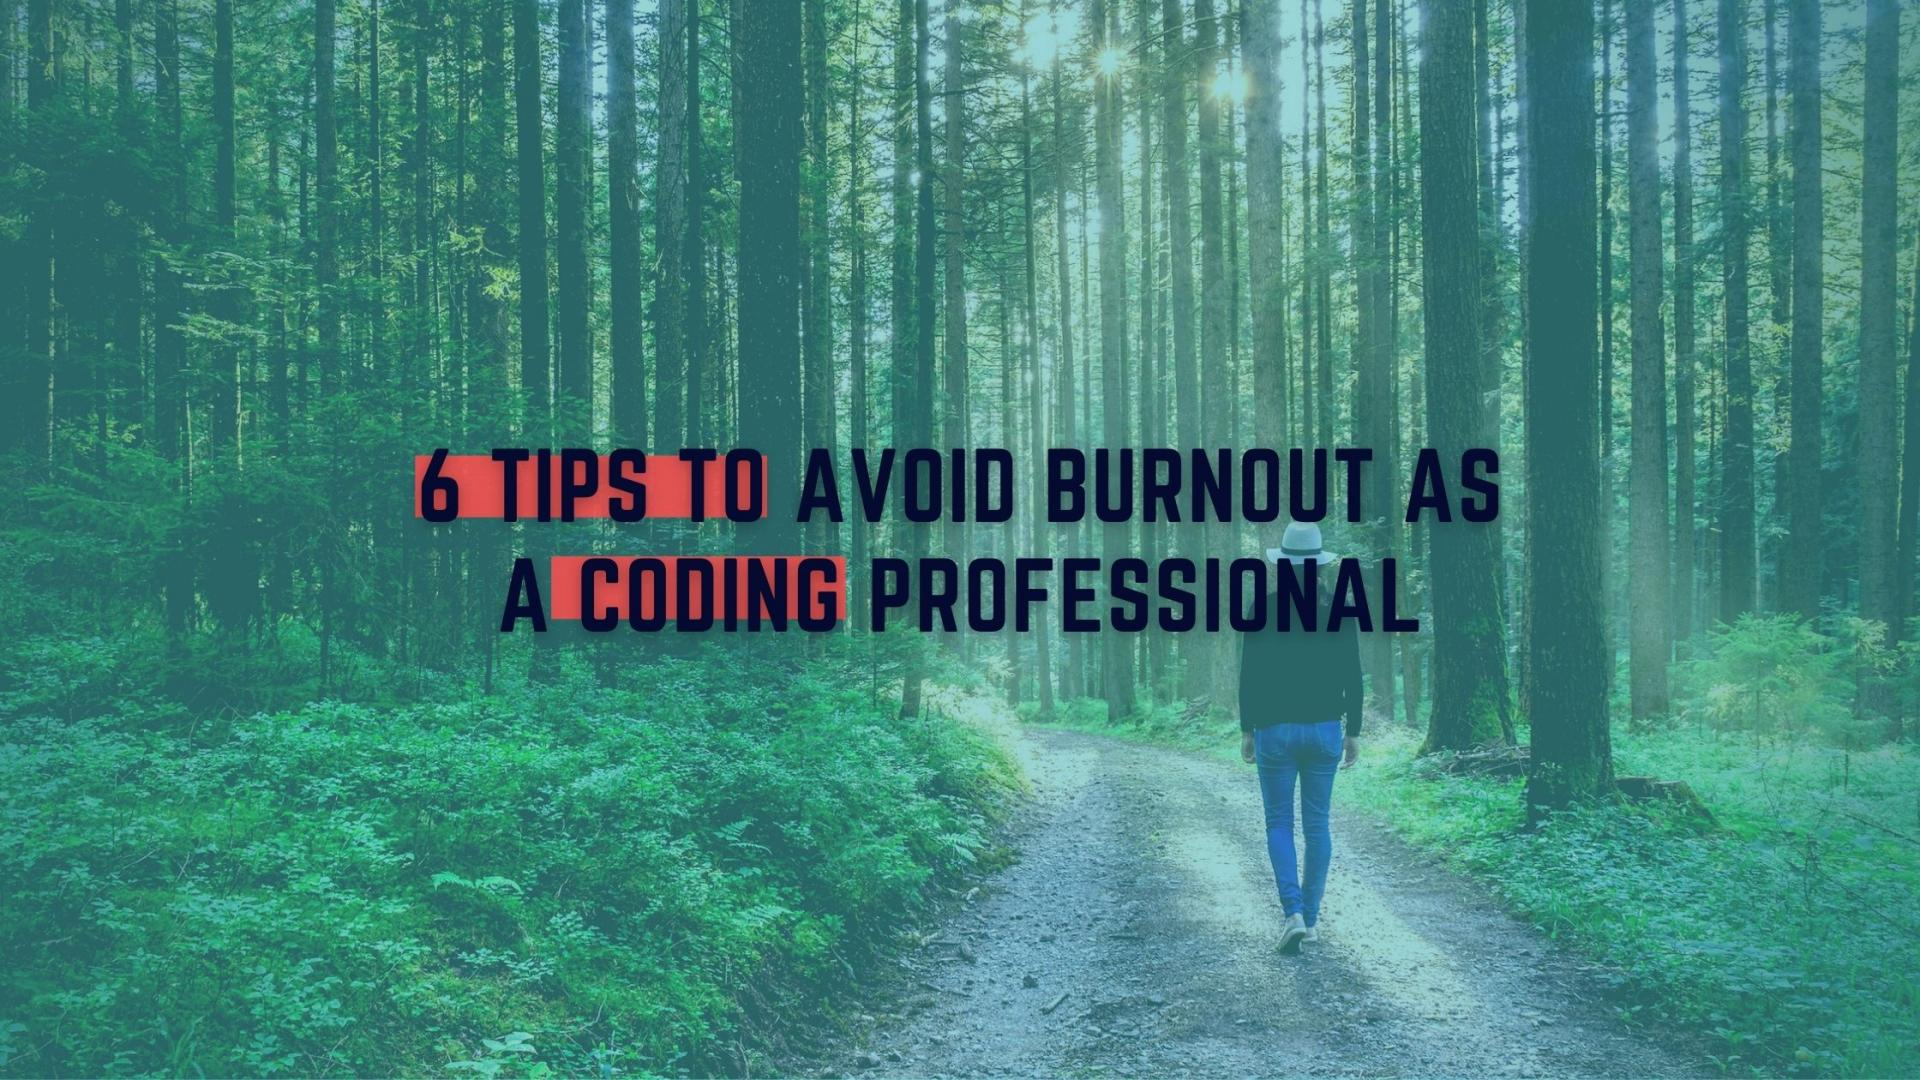 6 Tips To Avoid Burnout As a Coding Professional